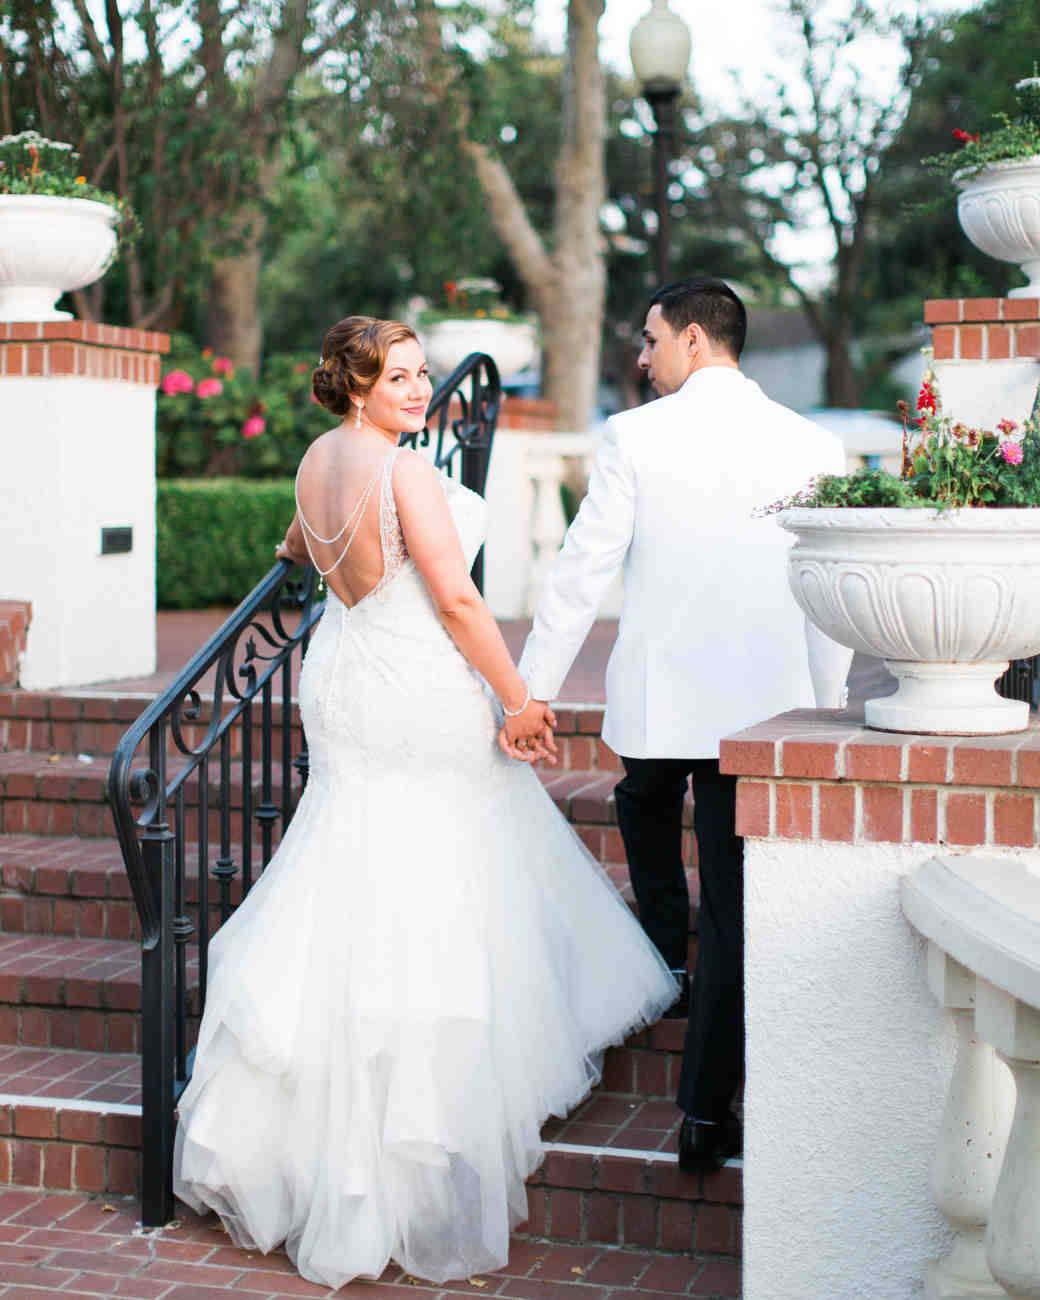 A Bride and Groom Walking Up the Stairs